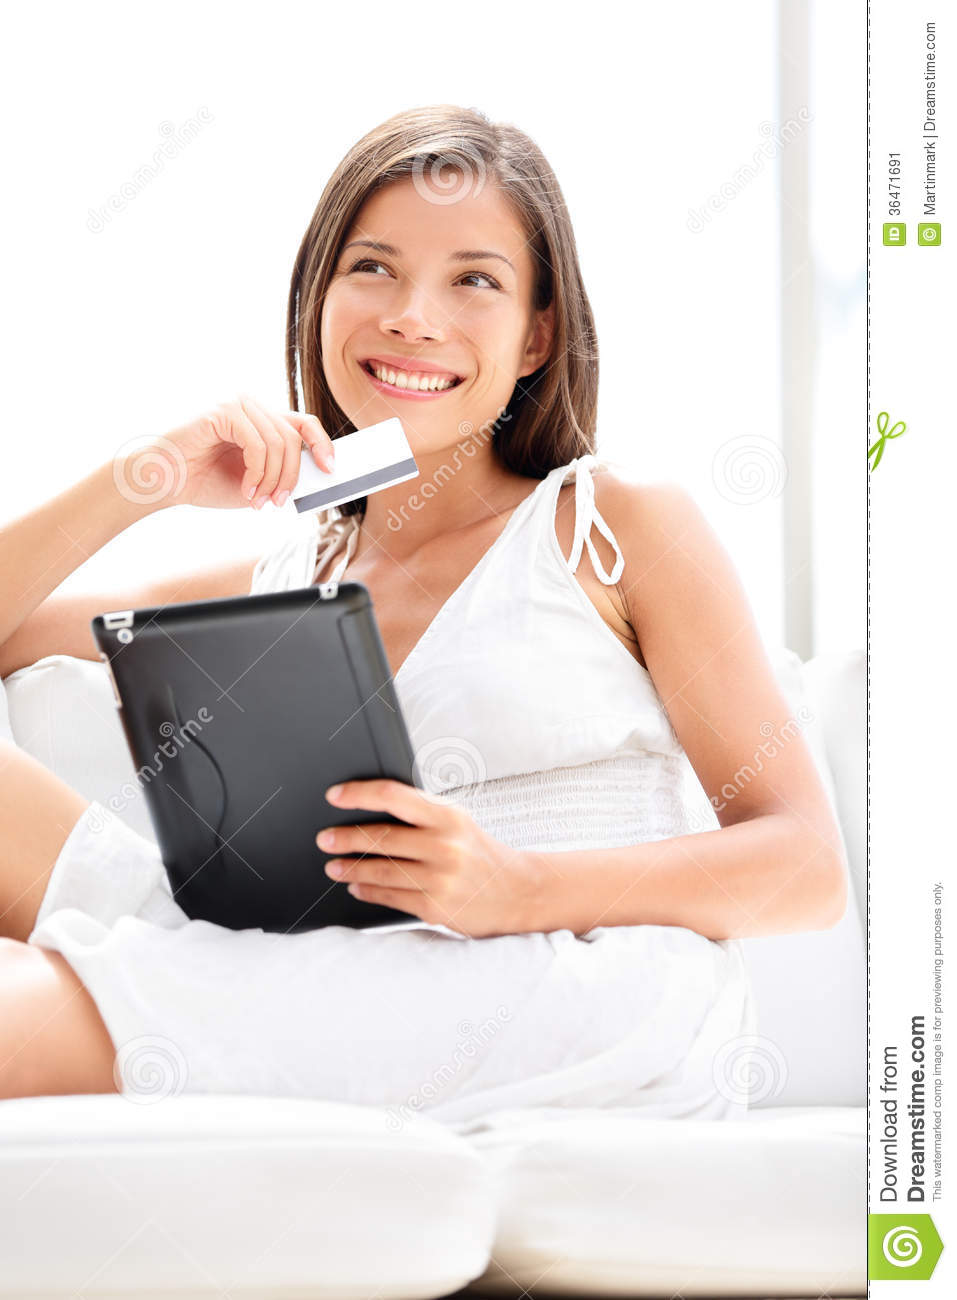 Woman Shopping On Tablet Computer With Credit Card Stock Image - Image ...: dreamstime.com/stock-image-woman-shopping-tablet-computer-credit...